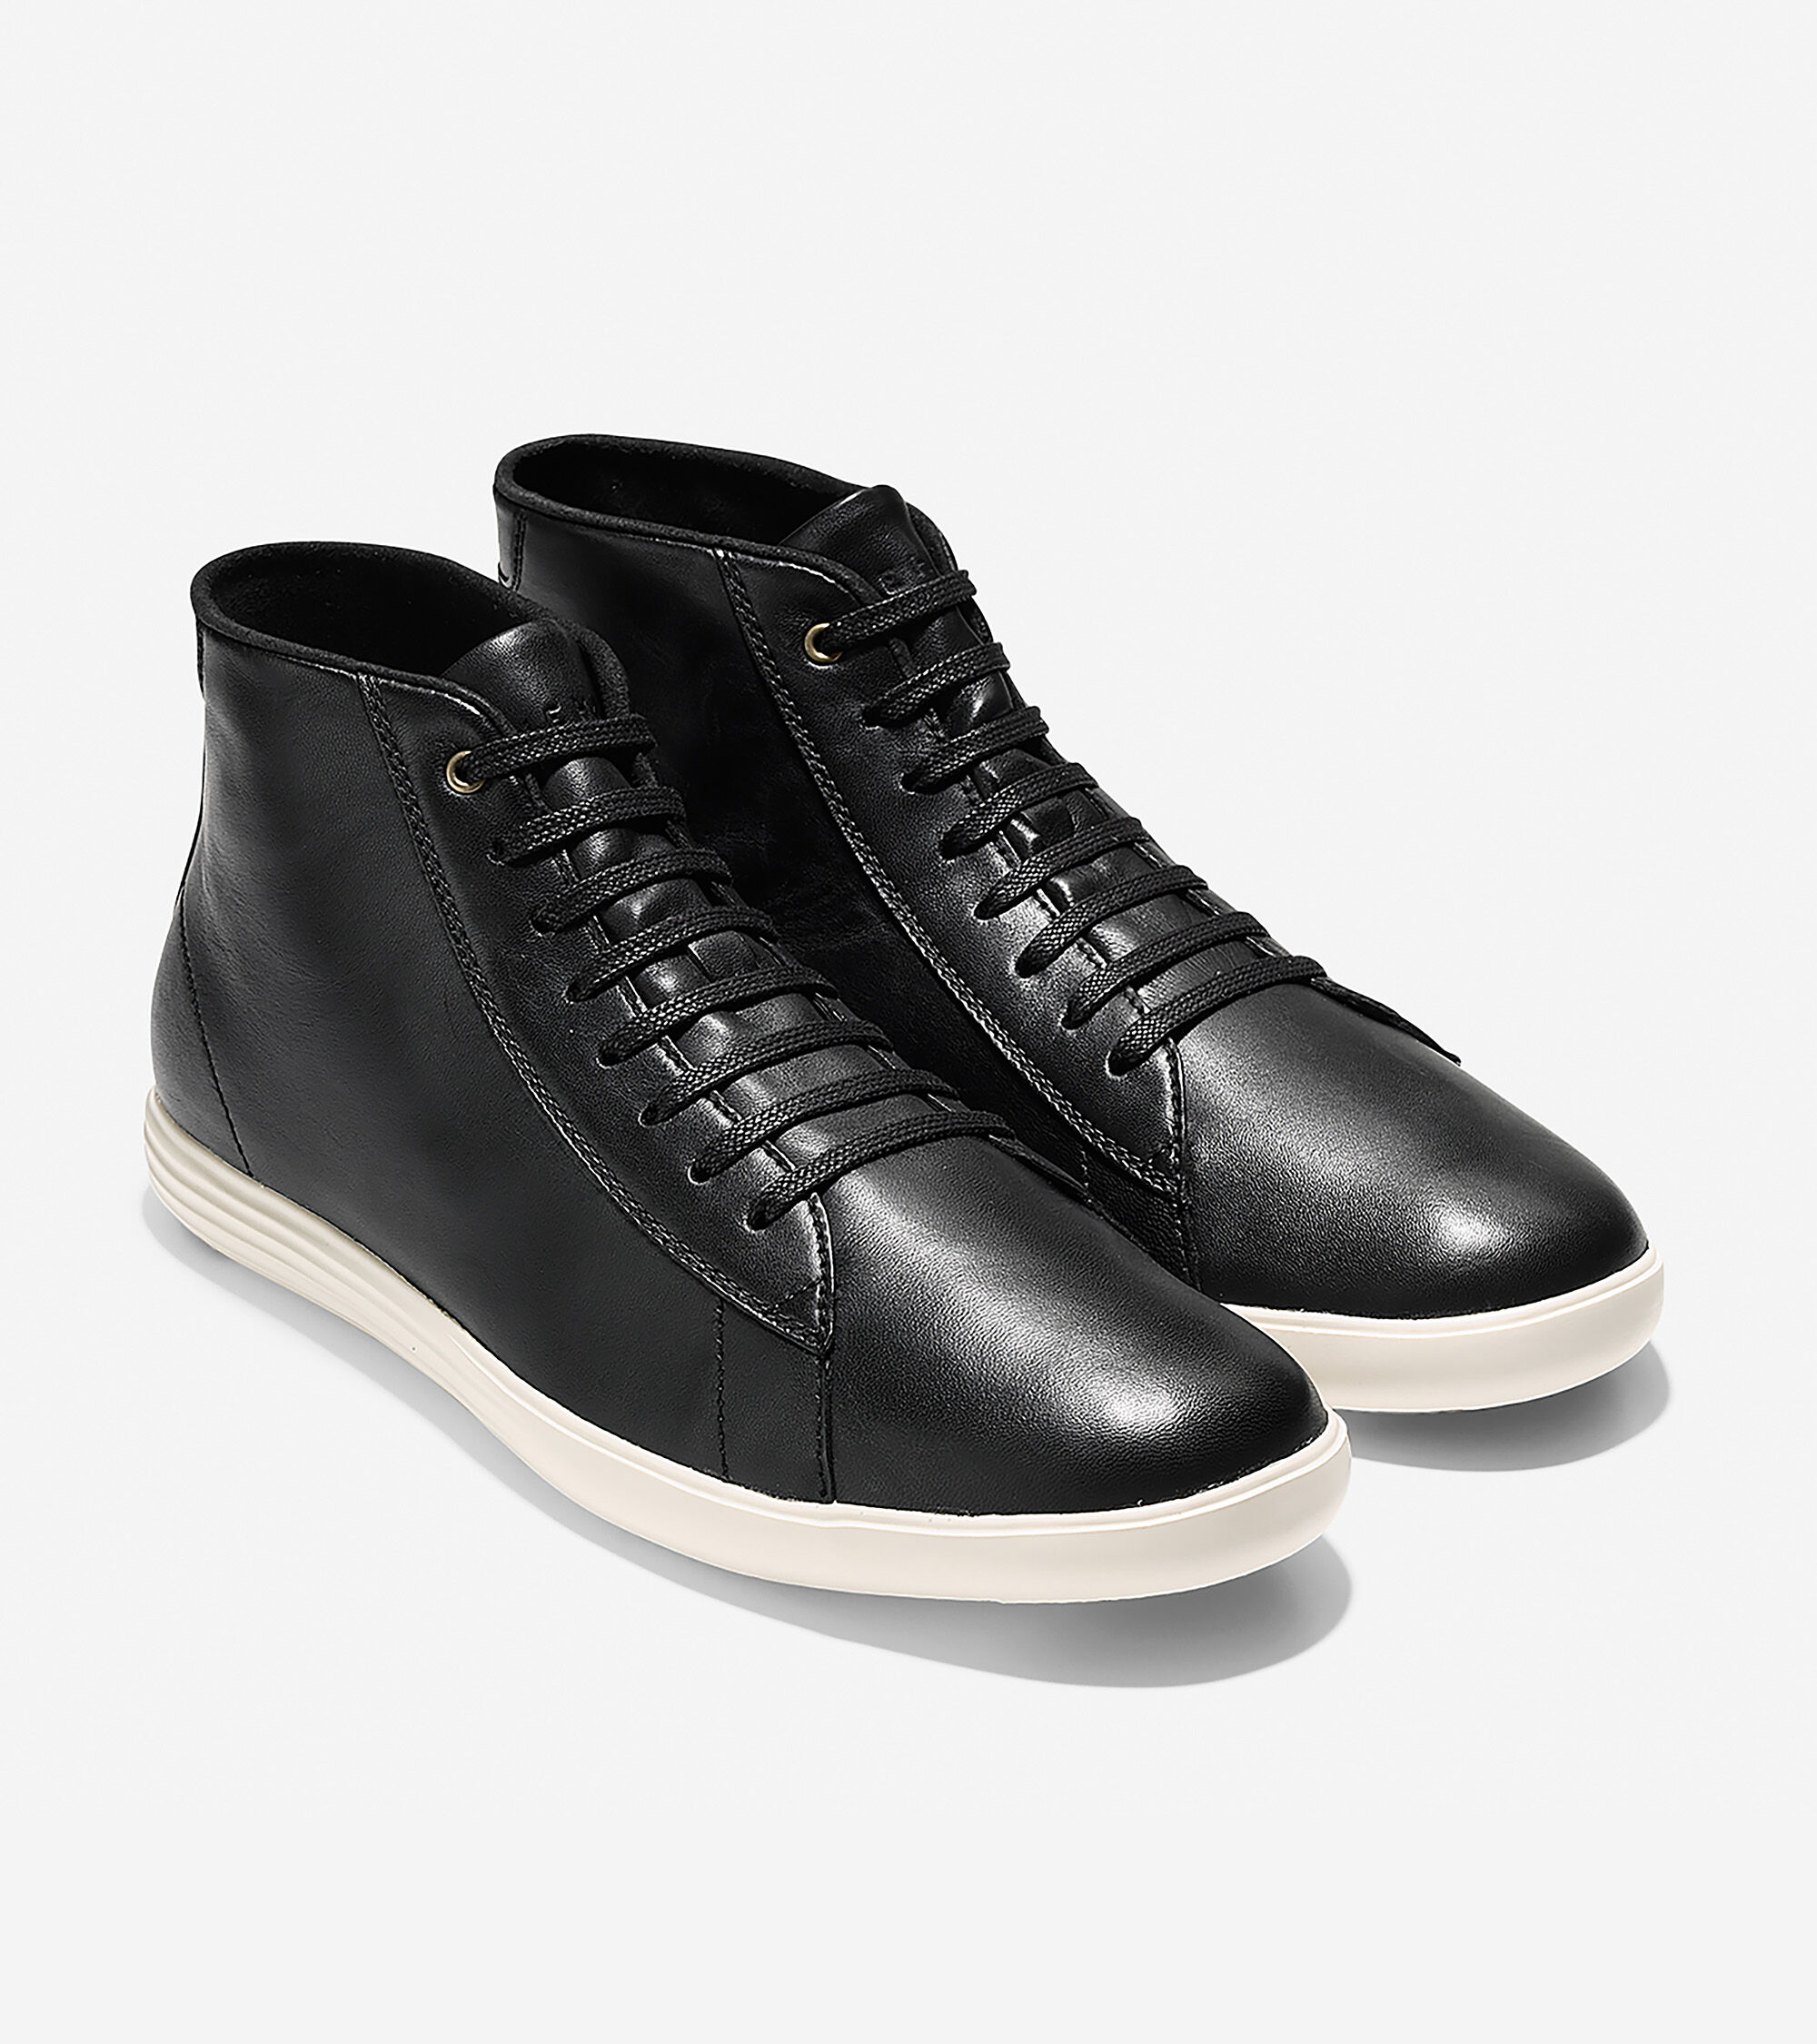 ... Men's Grand Crosscourt High Top Sneaker; Men's Grand Crosscourt High  Top Sneaker. #colehaan